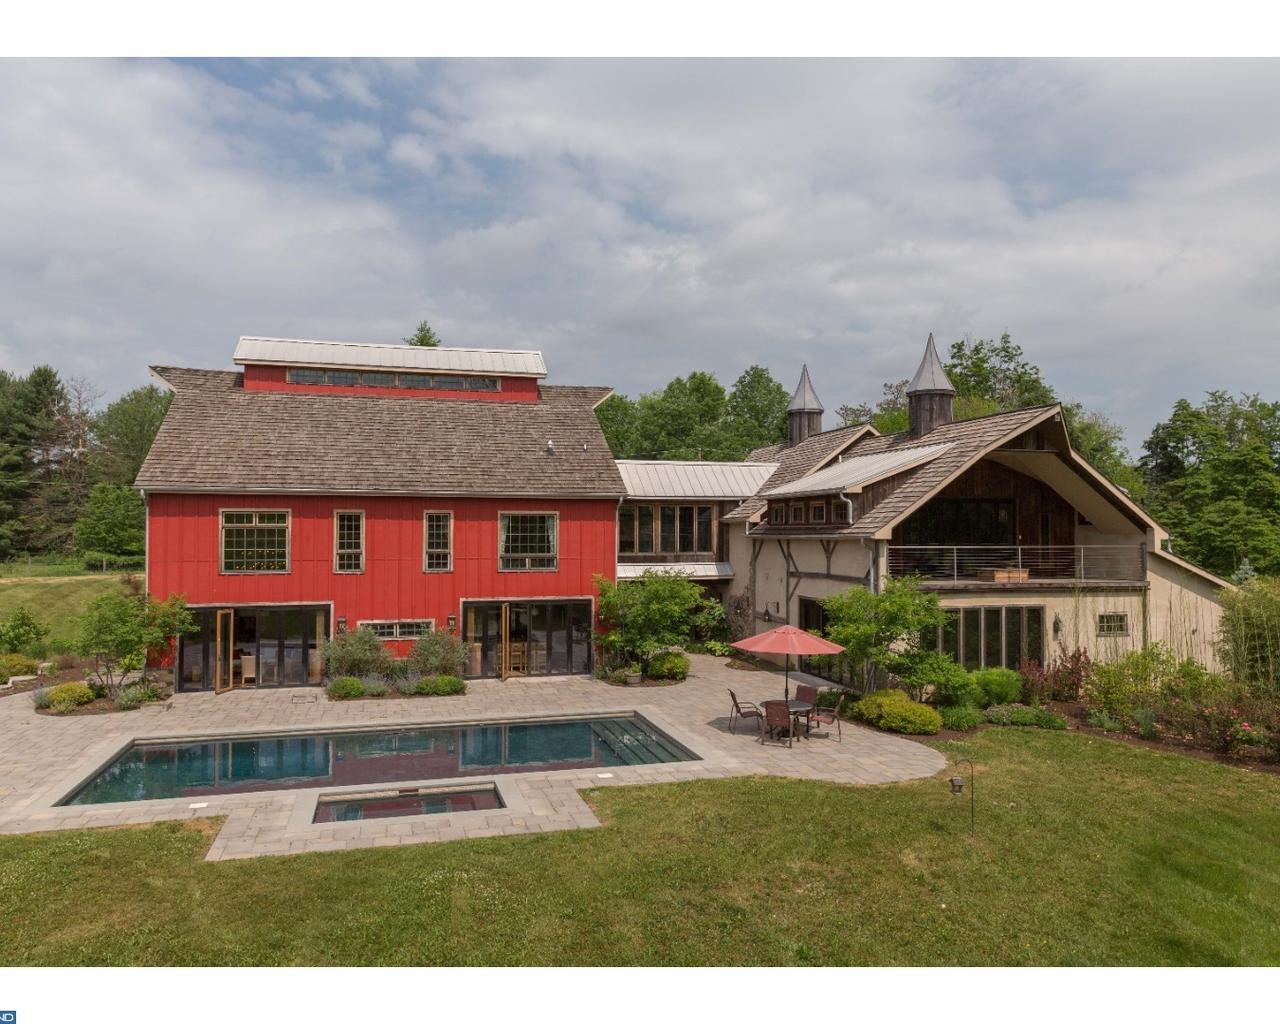 Three Luxury Converted Barn Homes For Sale EveryHome